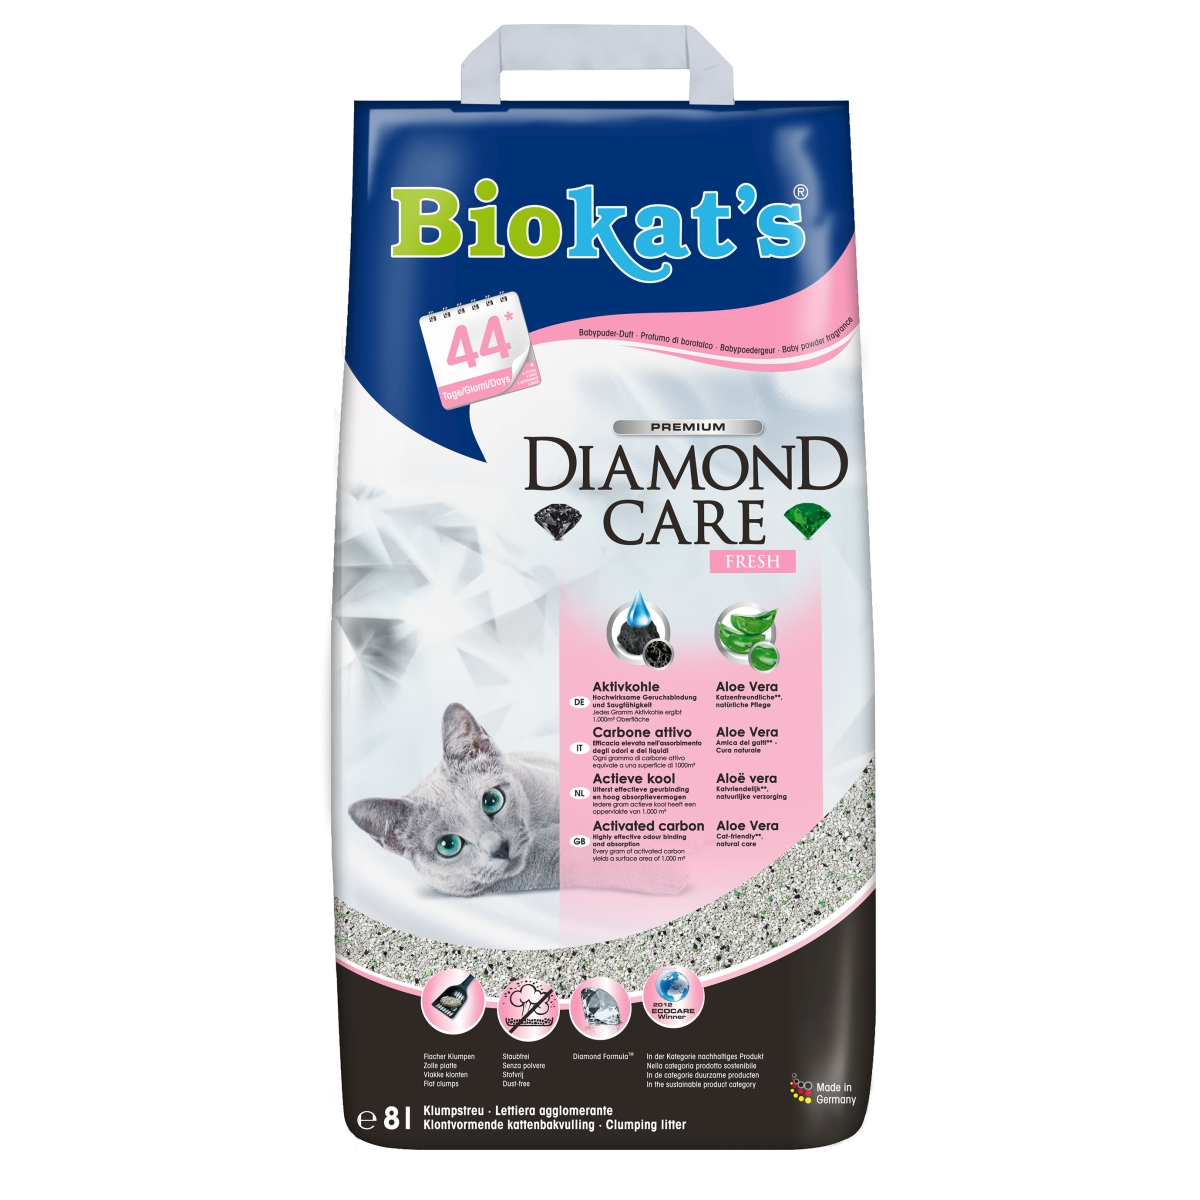 Diamond care classic fresh grijs 8 ltr